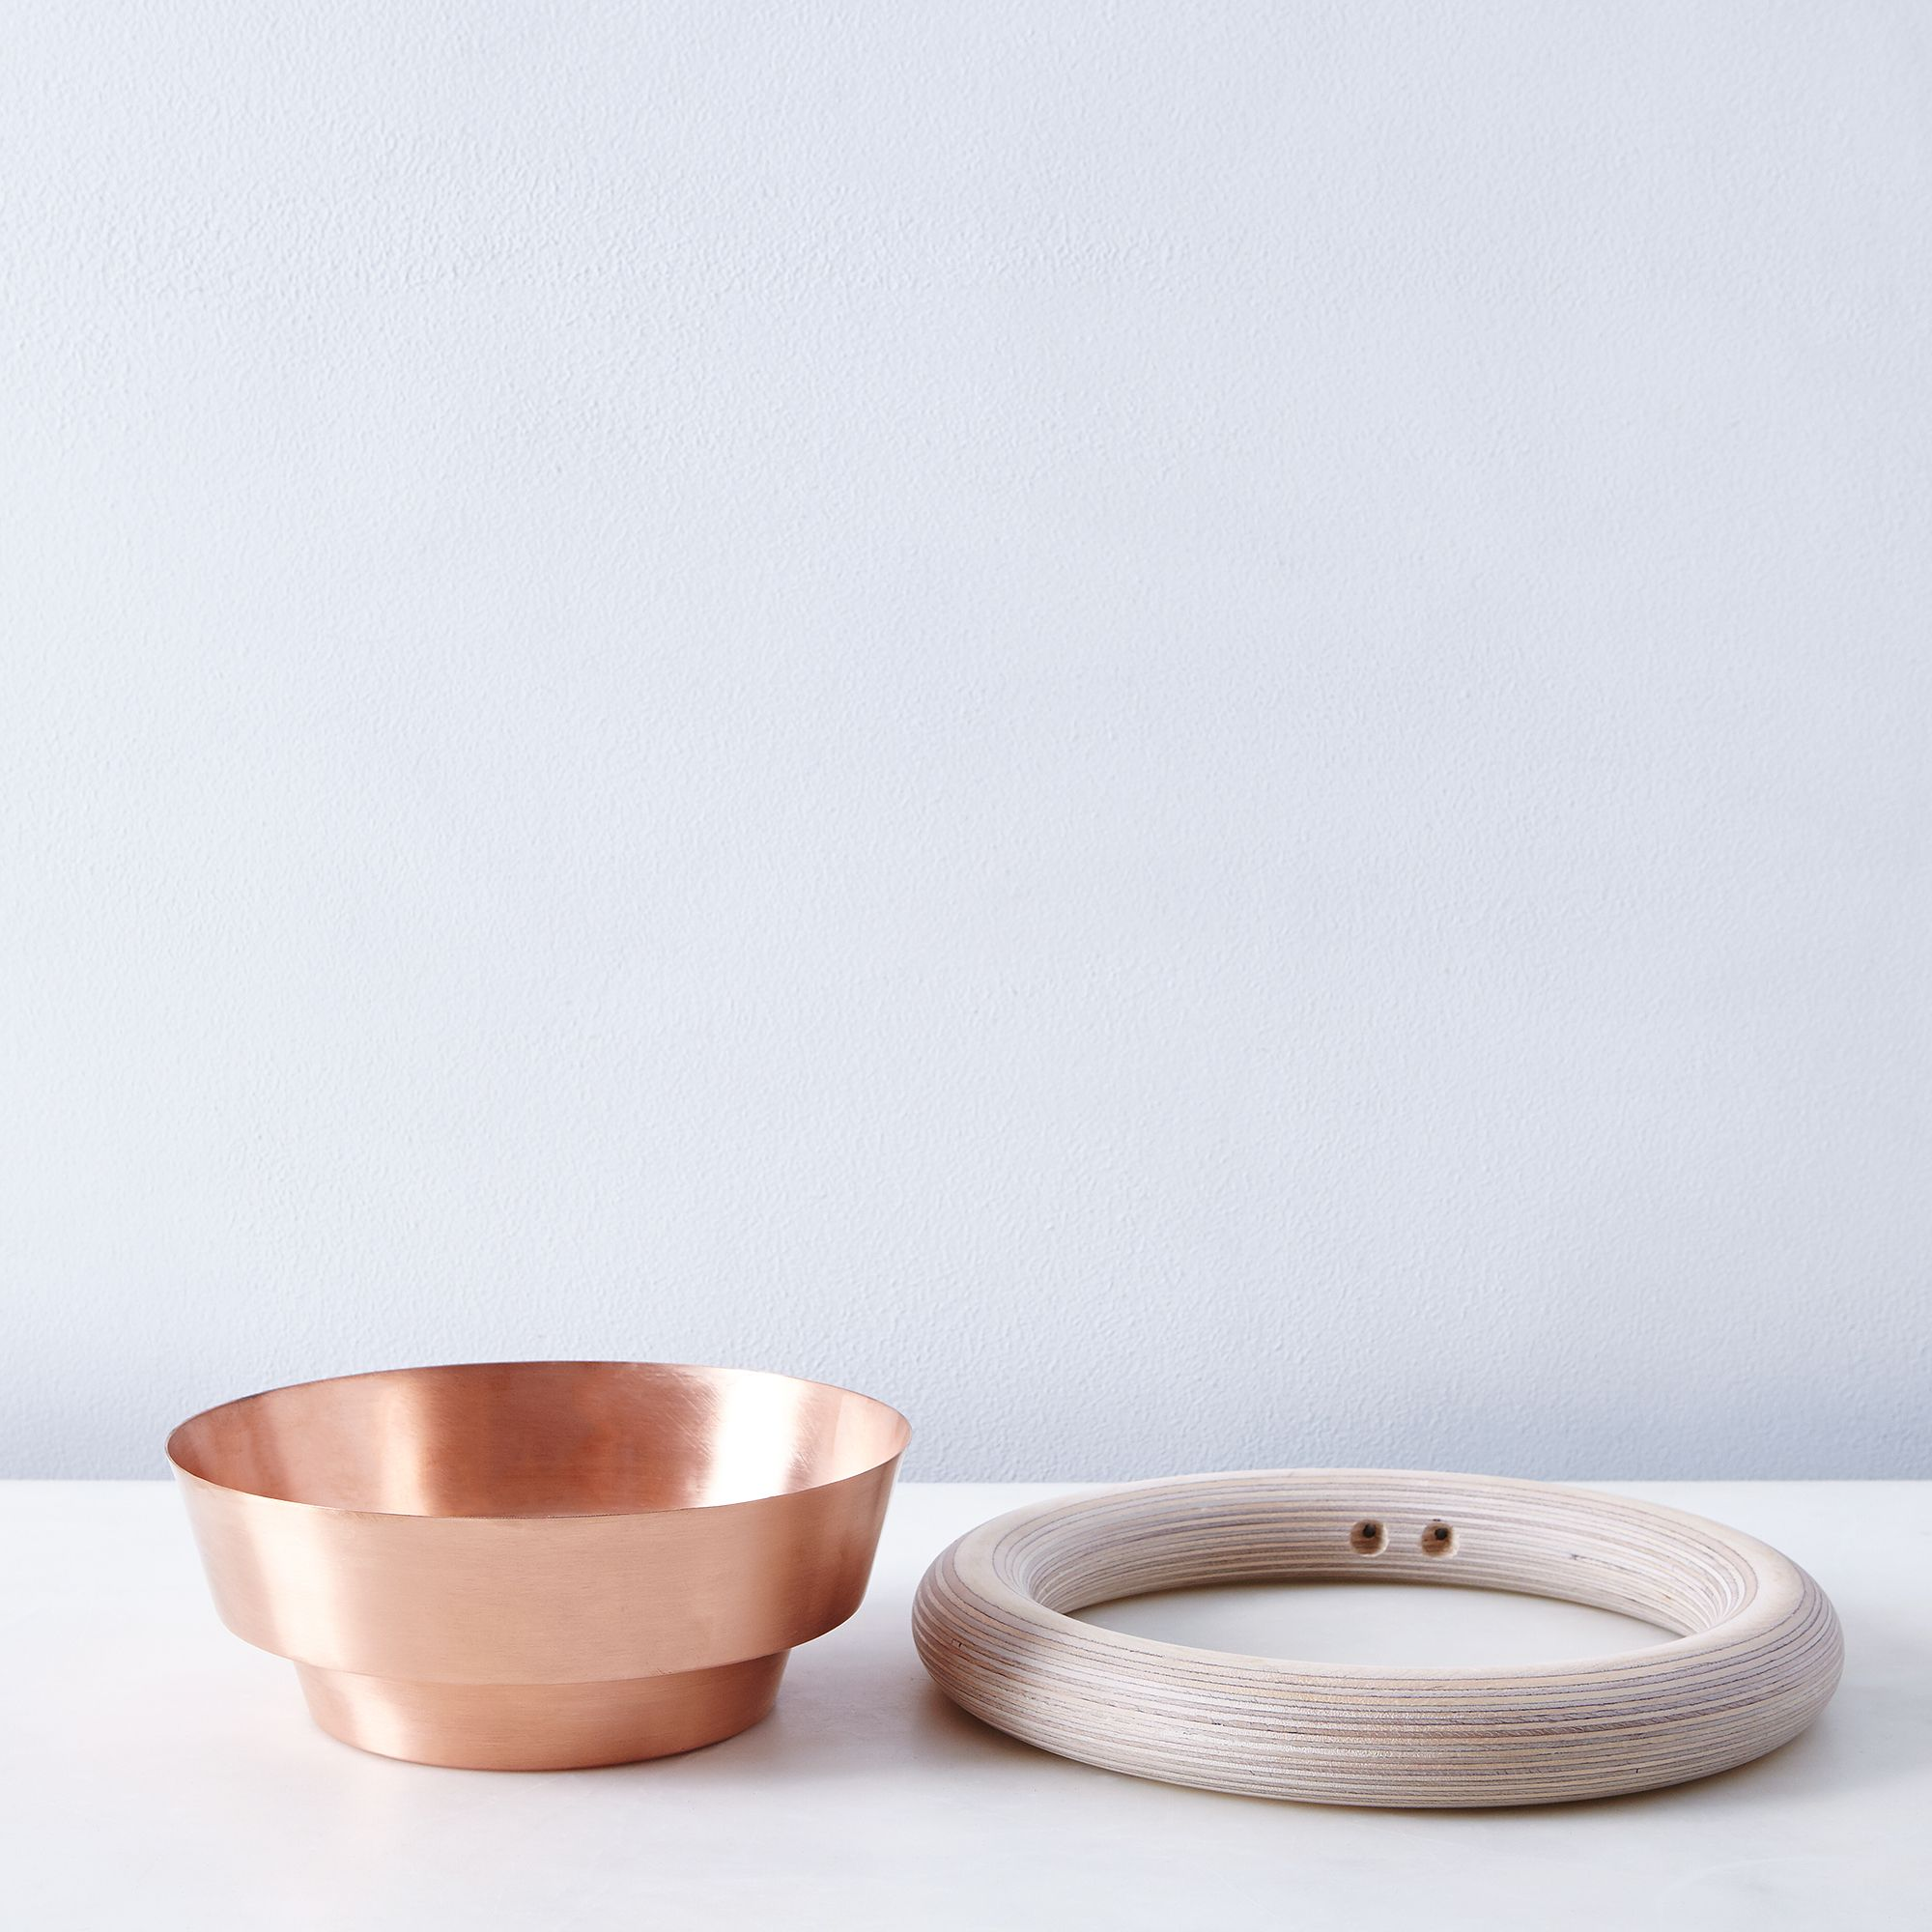 52bf1076 6a0f 450c bab1 fe8791fc79fc  2016 0701 yield spun bowl and wall mount copper with ring wall mount silo rocky luten 017